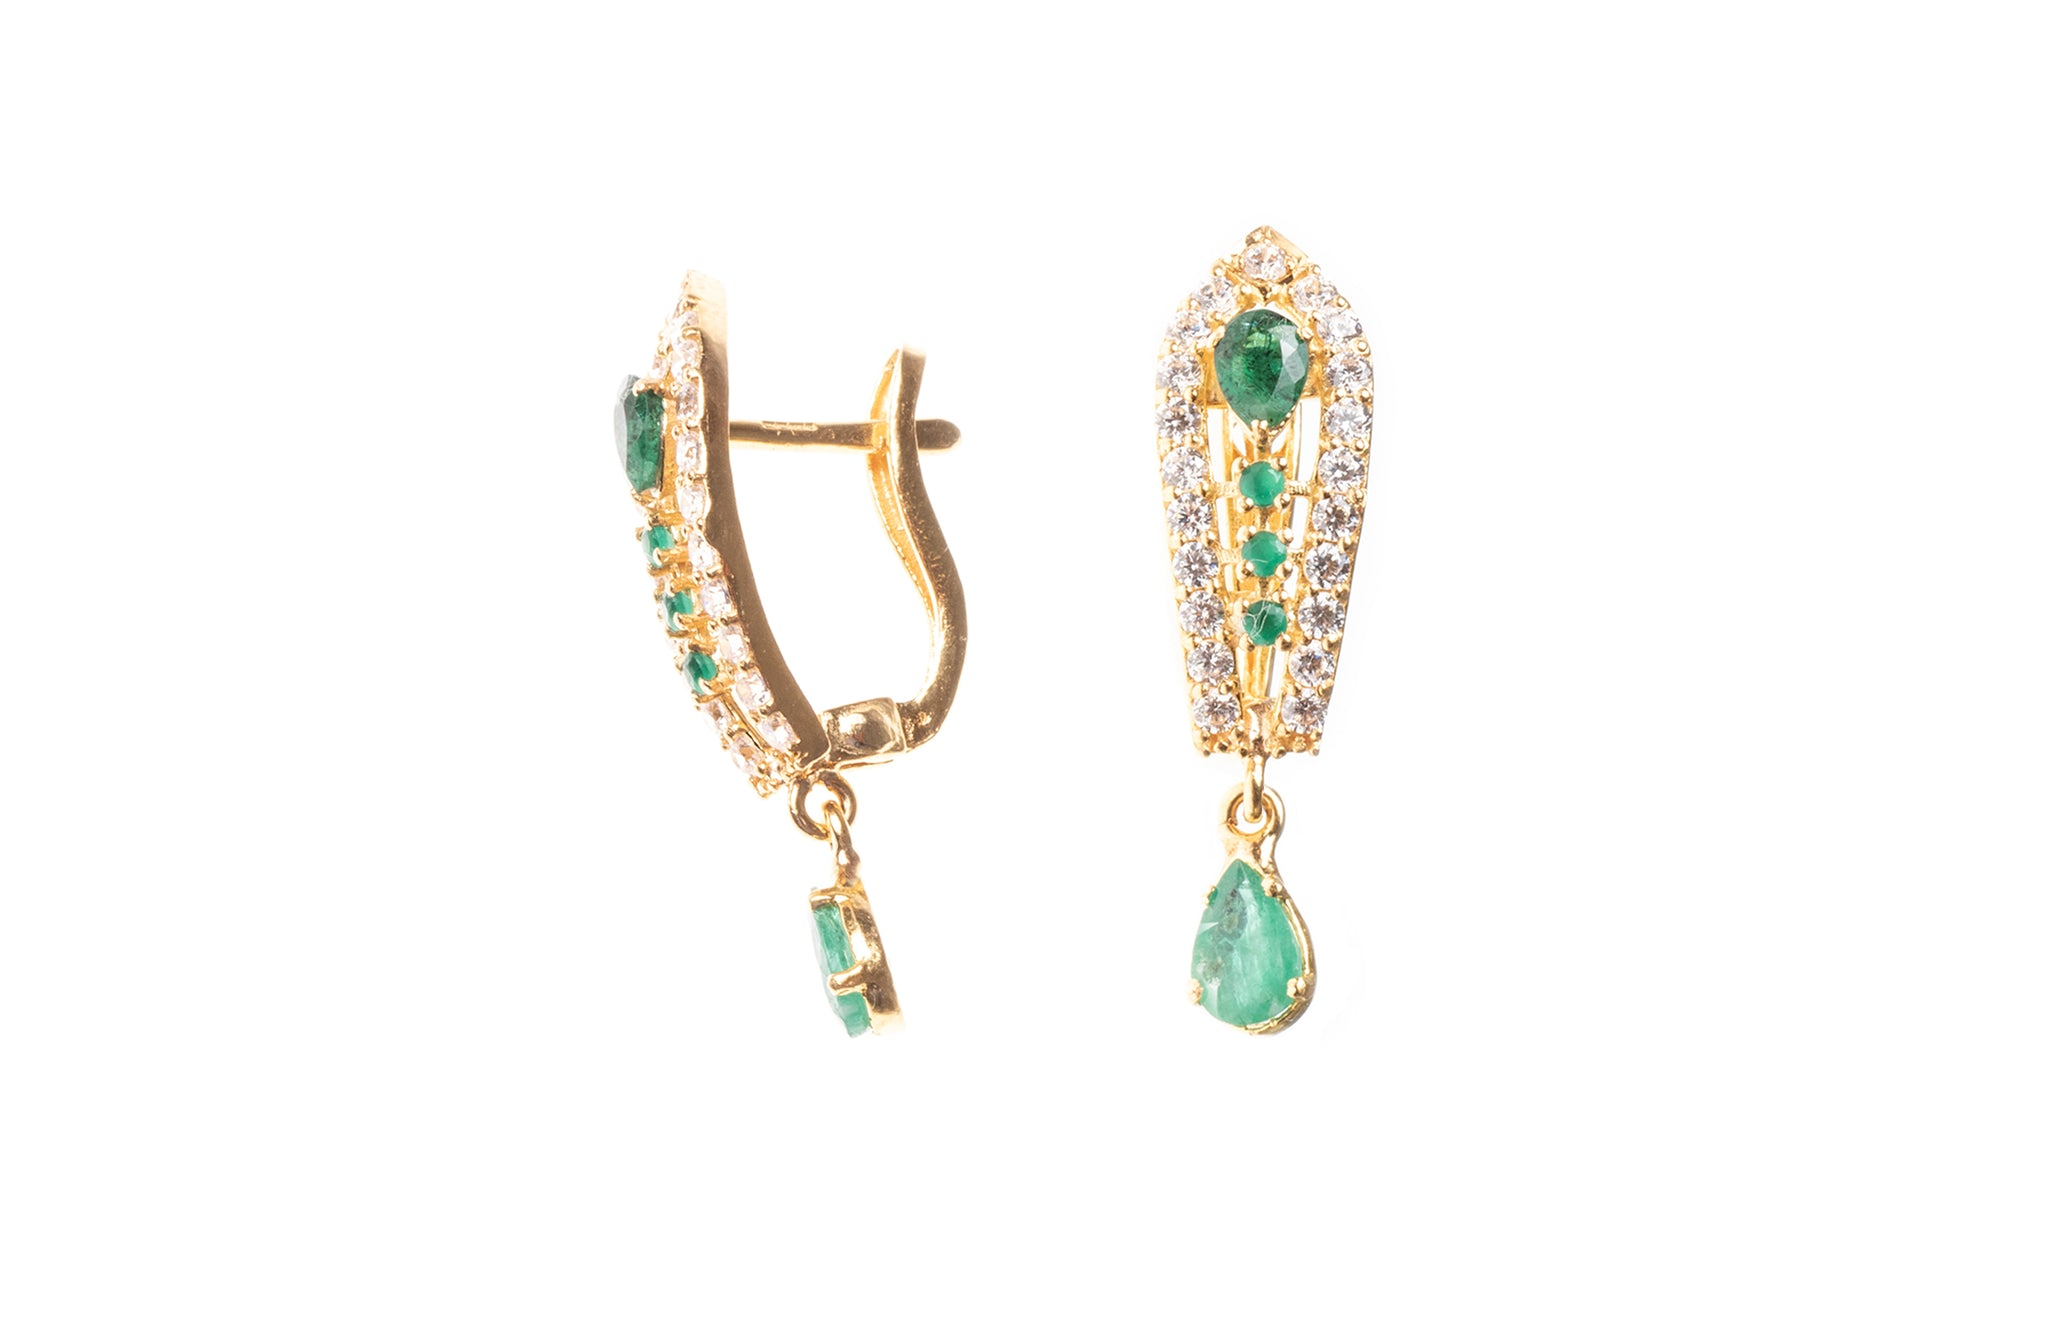 22ct Gold Green and White Cubic Zirconia Drop Hoop Earrings (5.1g) E-7866